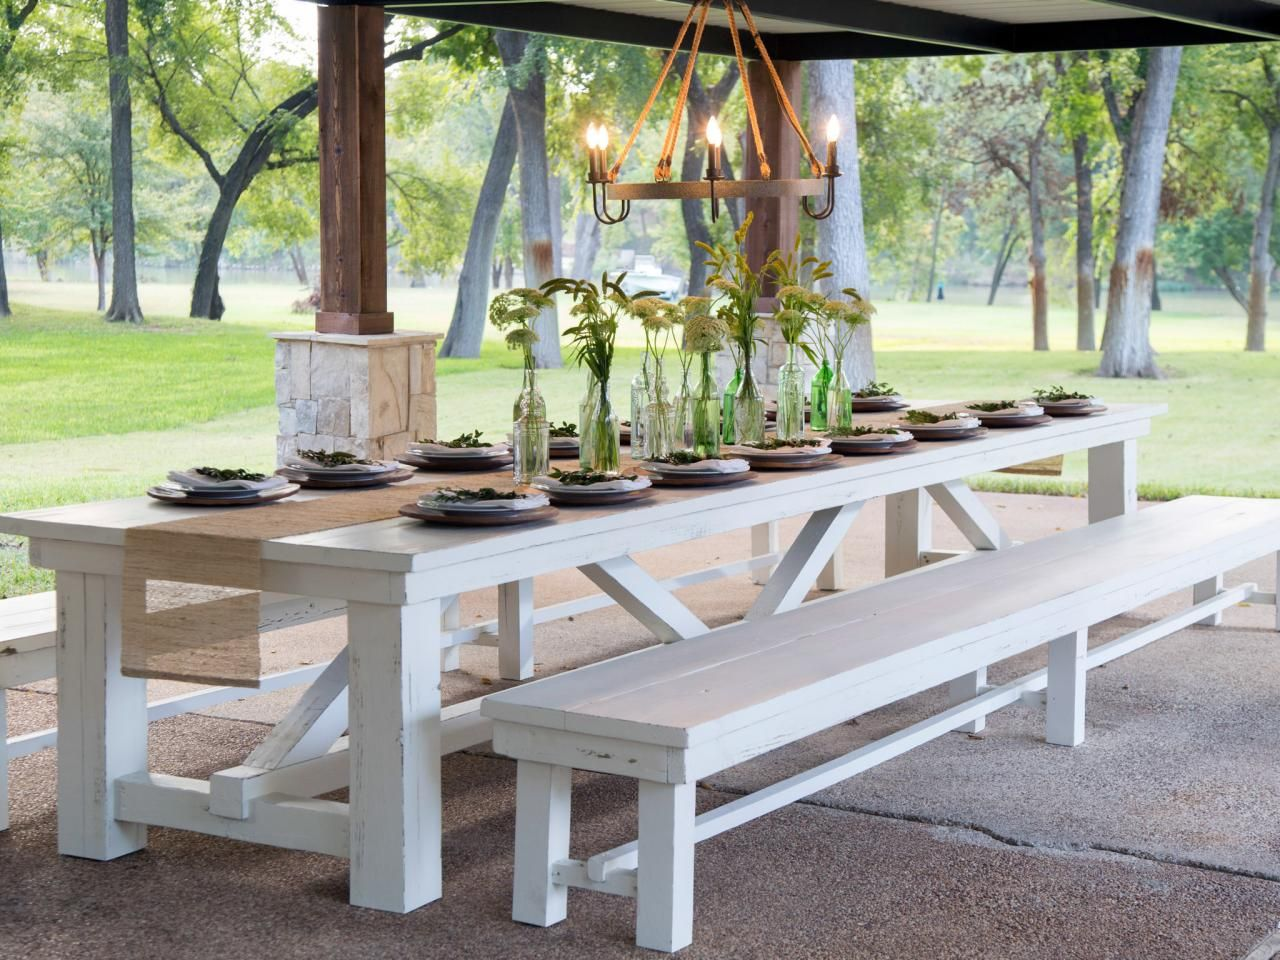 Fixer upper kitchen table decor - Fixer Upper S Fourth Season Is Shooting Now And As Reported In A Filming Update From